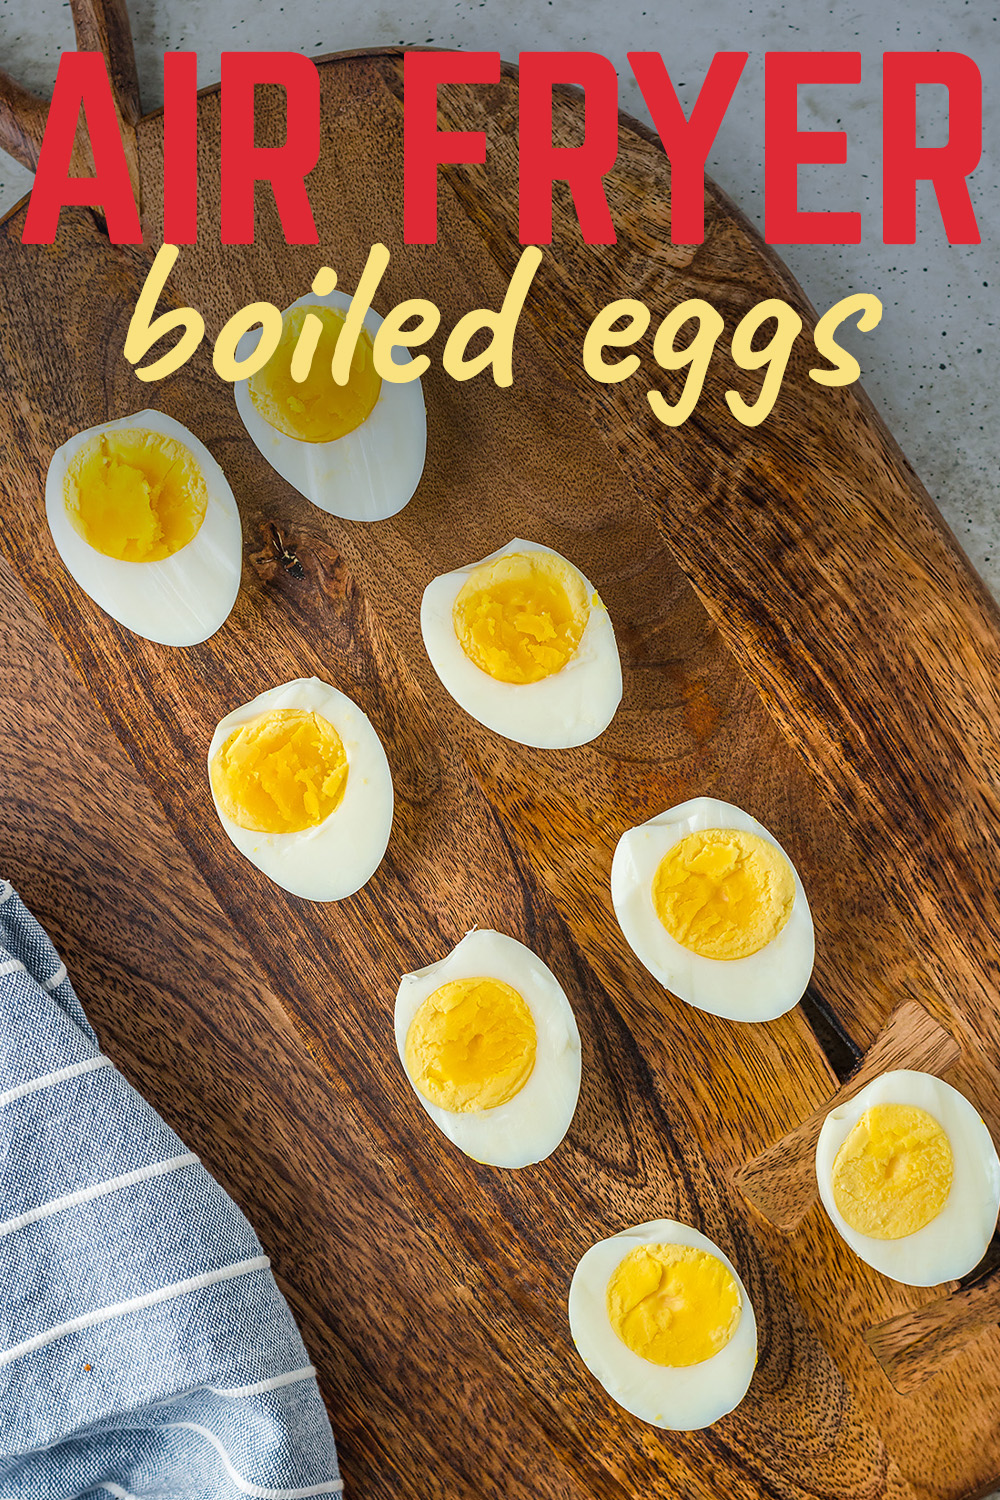 Overhead view of boiled eggs cut in half on a wooden serving tray